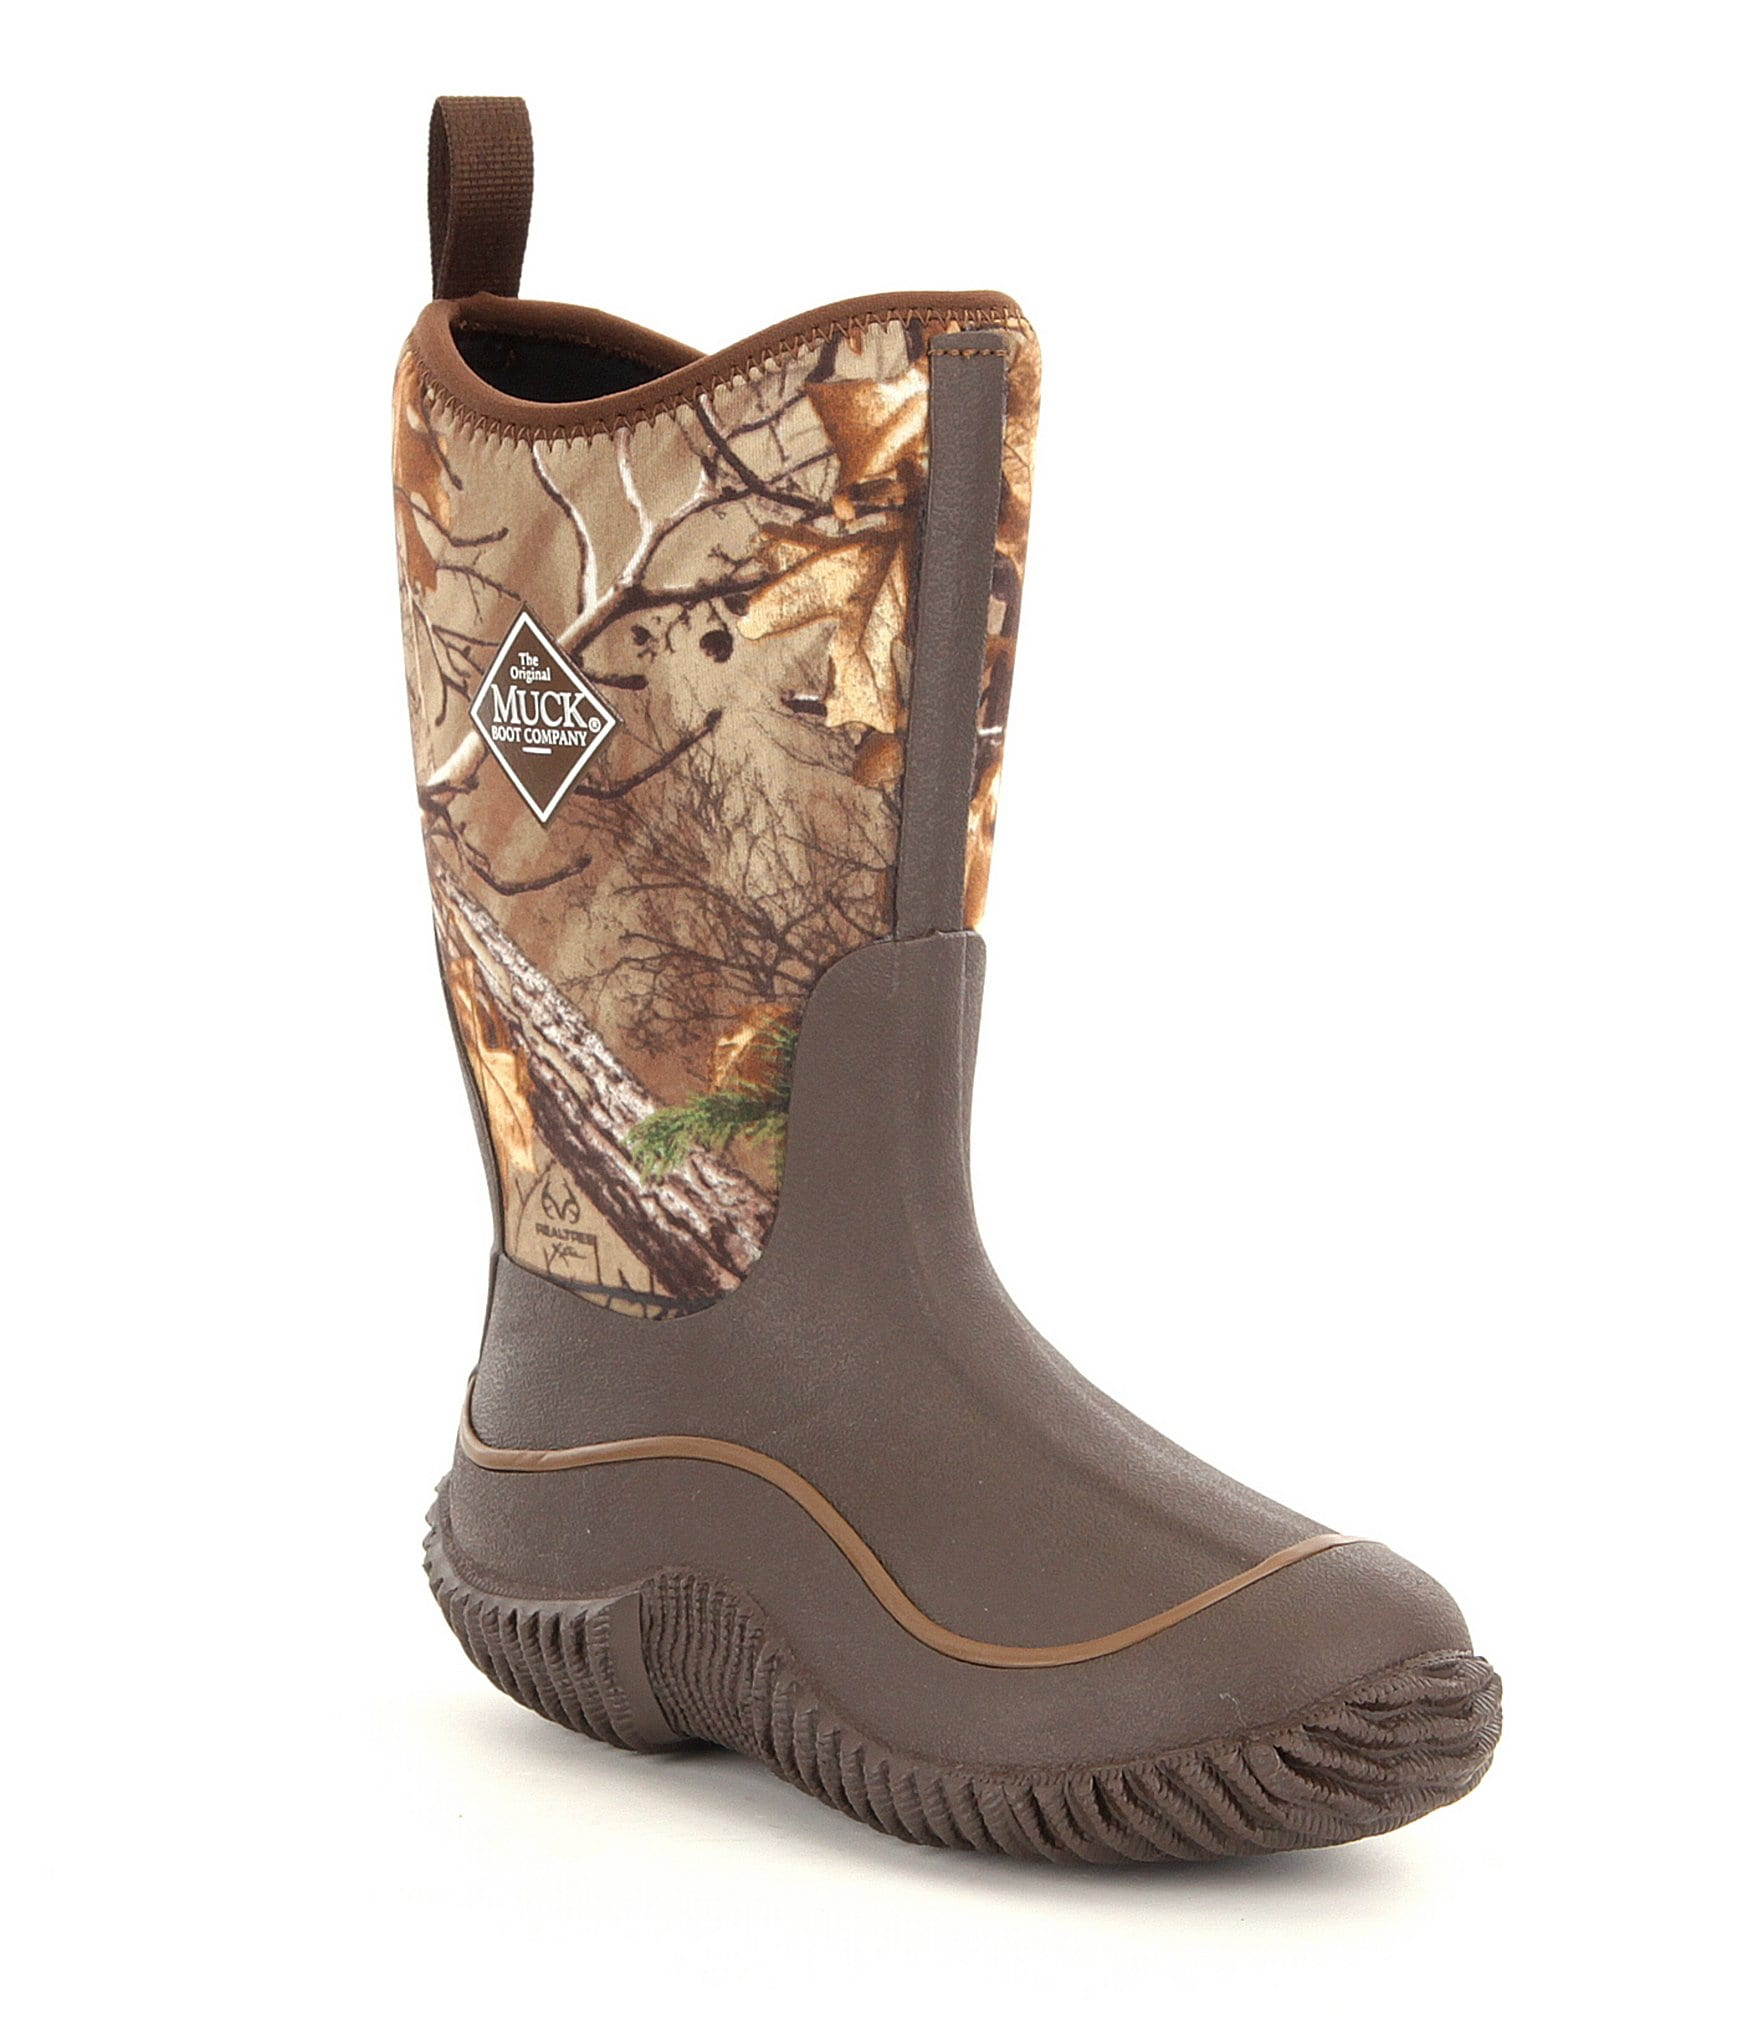 Nov 07,  · Muck Boot Company designs footwear which can withstand the toughest of weather conditions and still keep your feet warm and dry. The footwear brand uses Neoprene shells and xpress cool material which makes the shoe lightweight, waterproof, and provide antimicrobial properties.